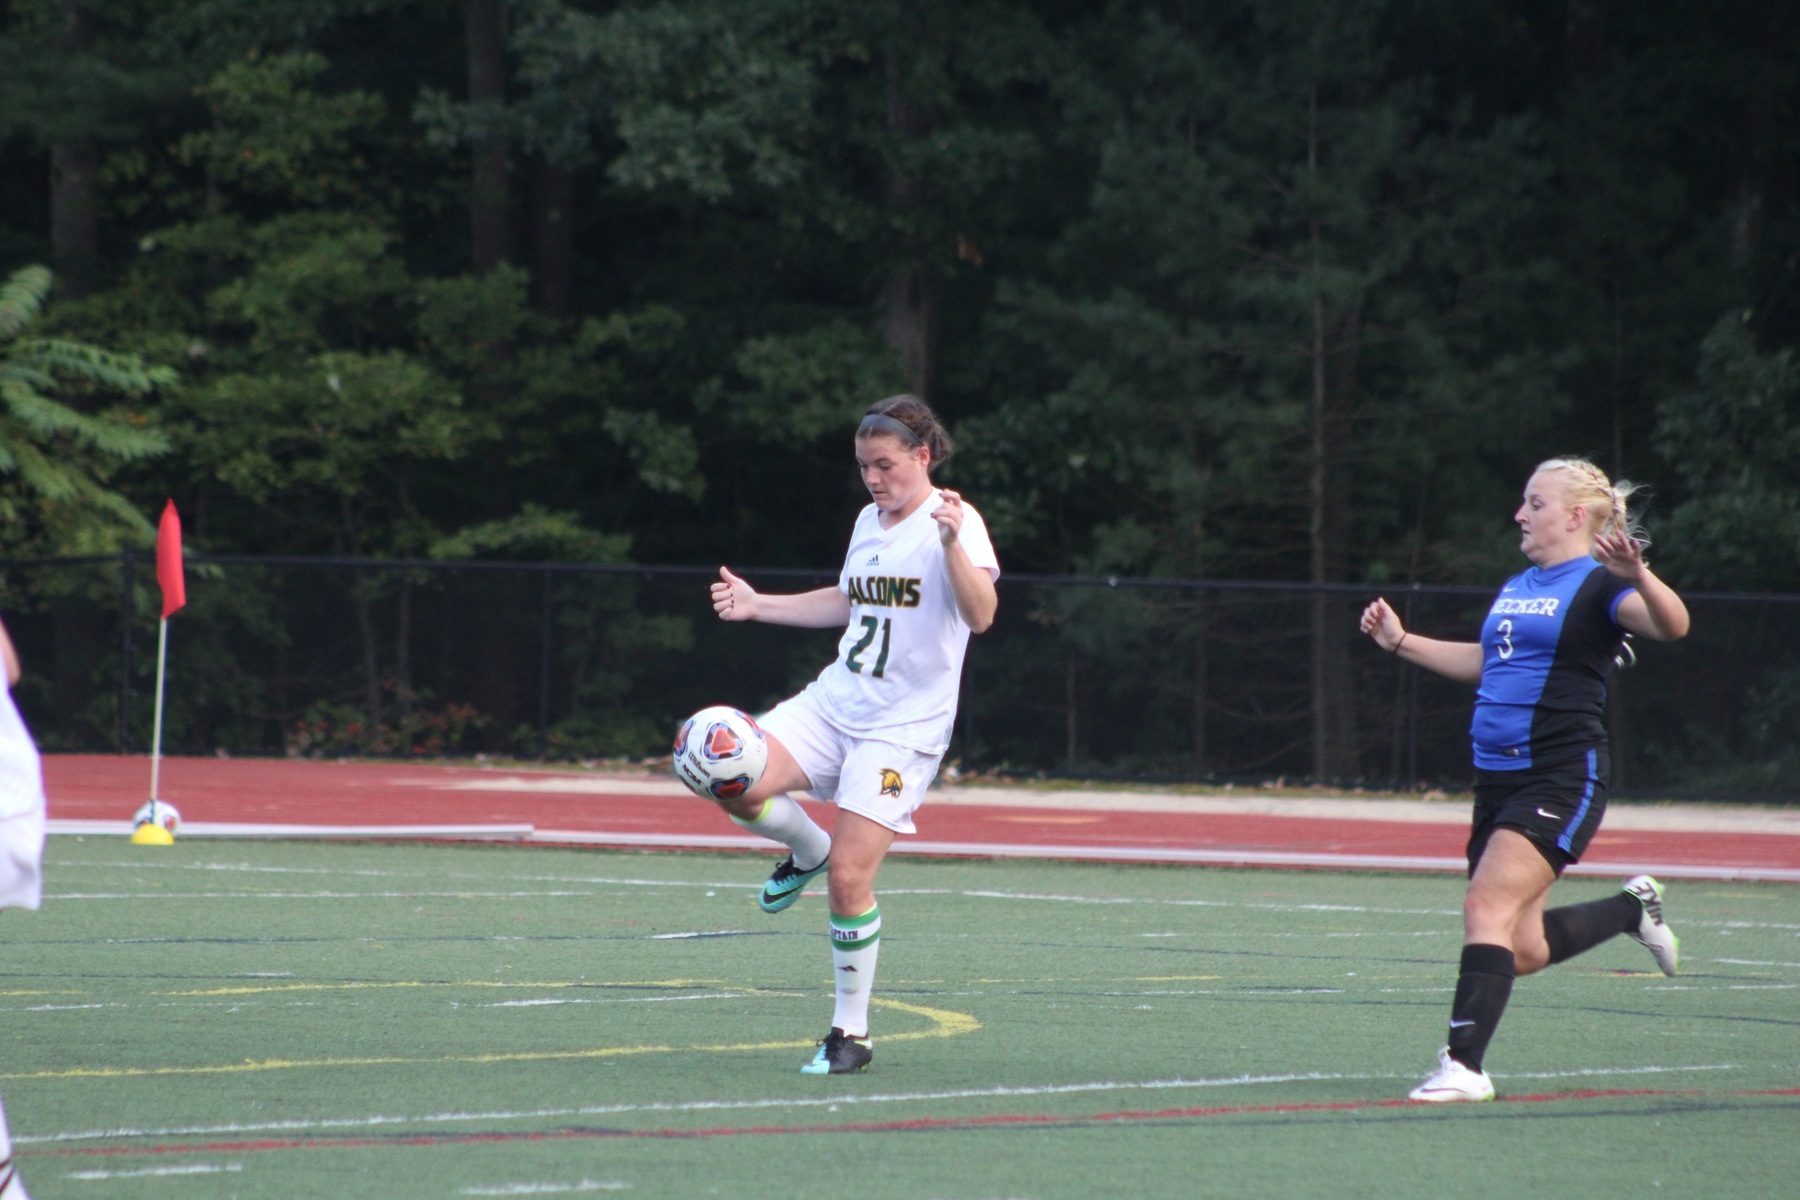 Falcons Fall to Lynx in Women' Soccer